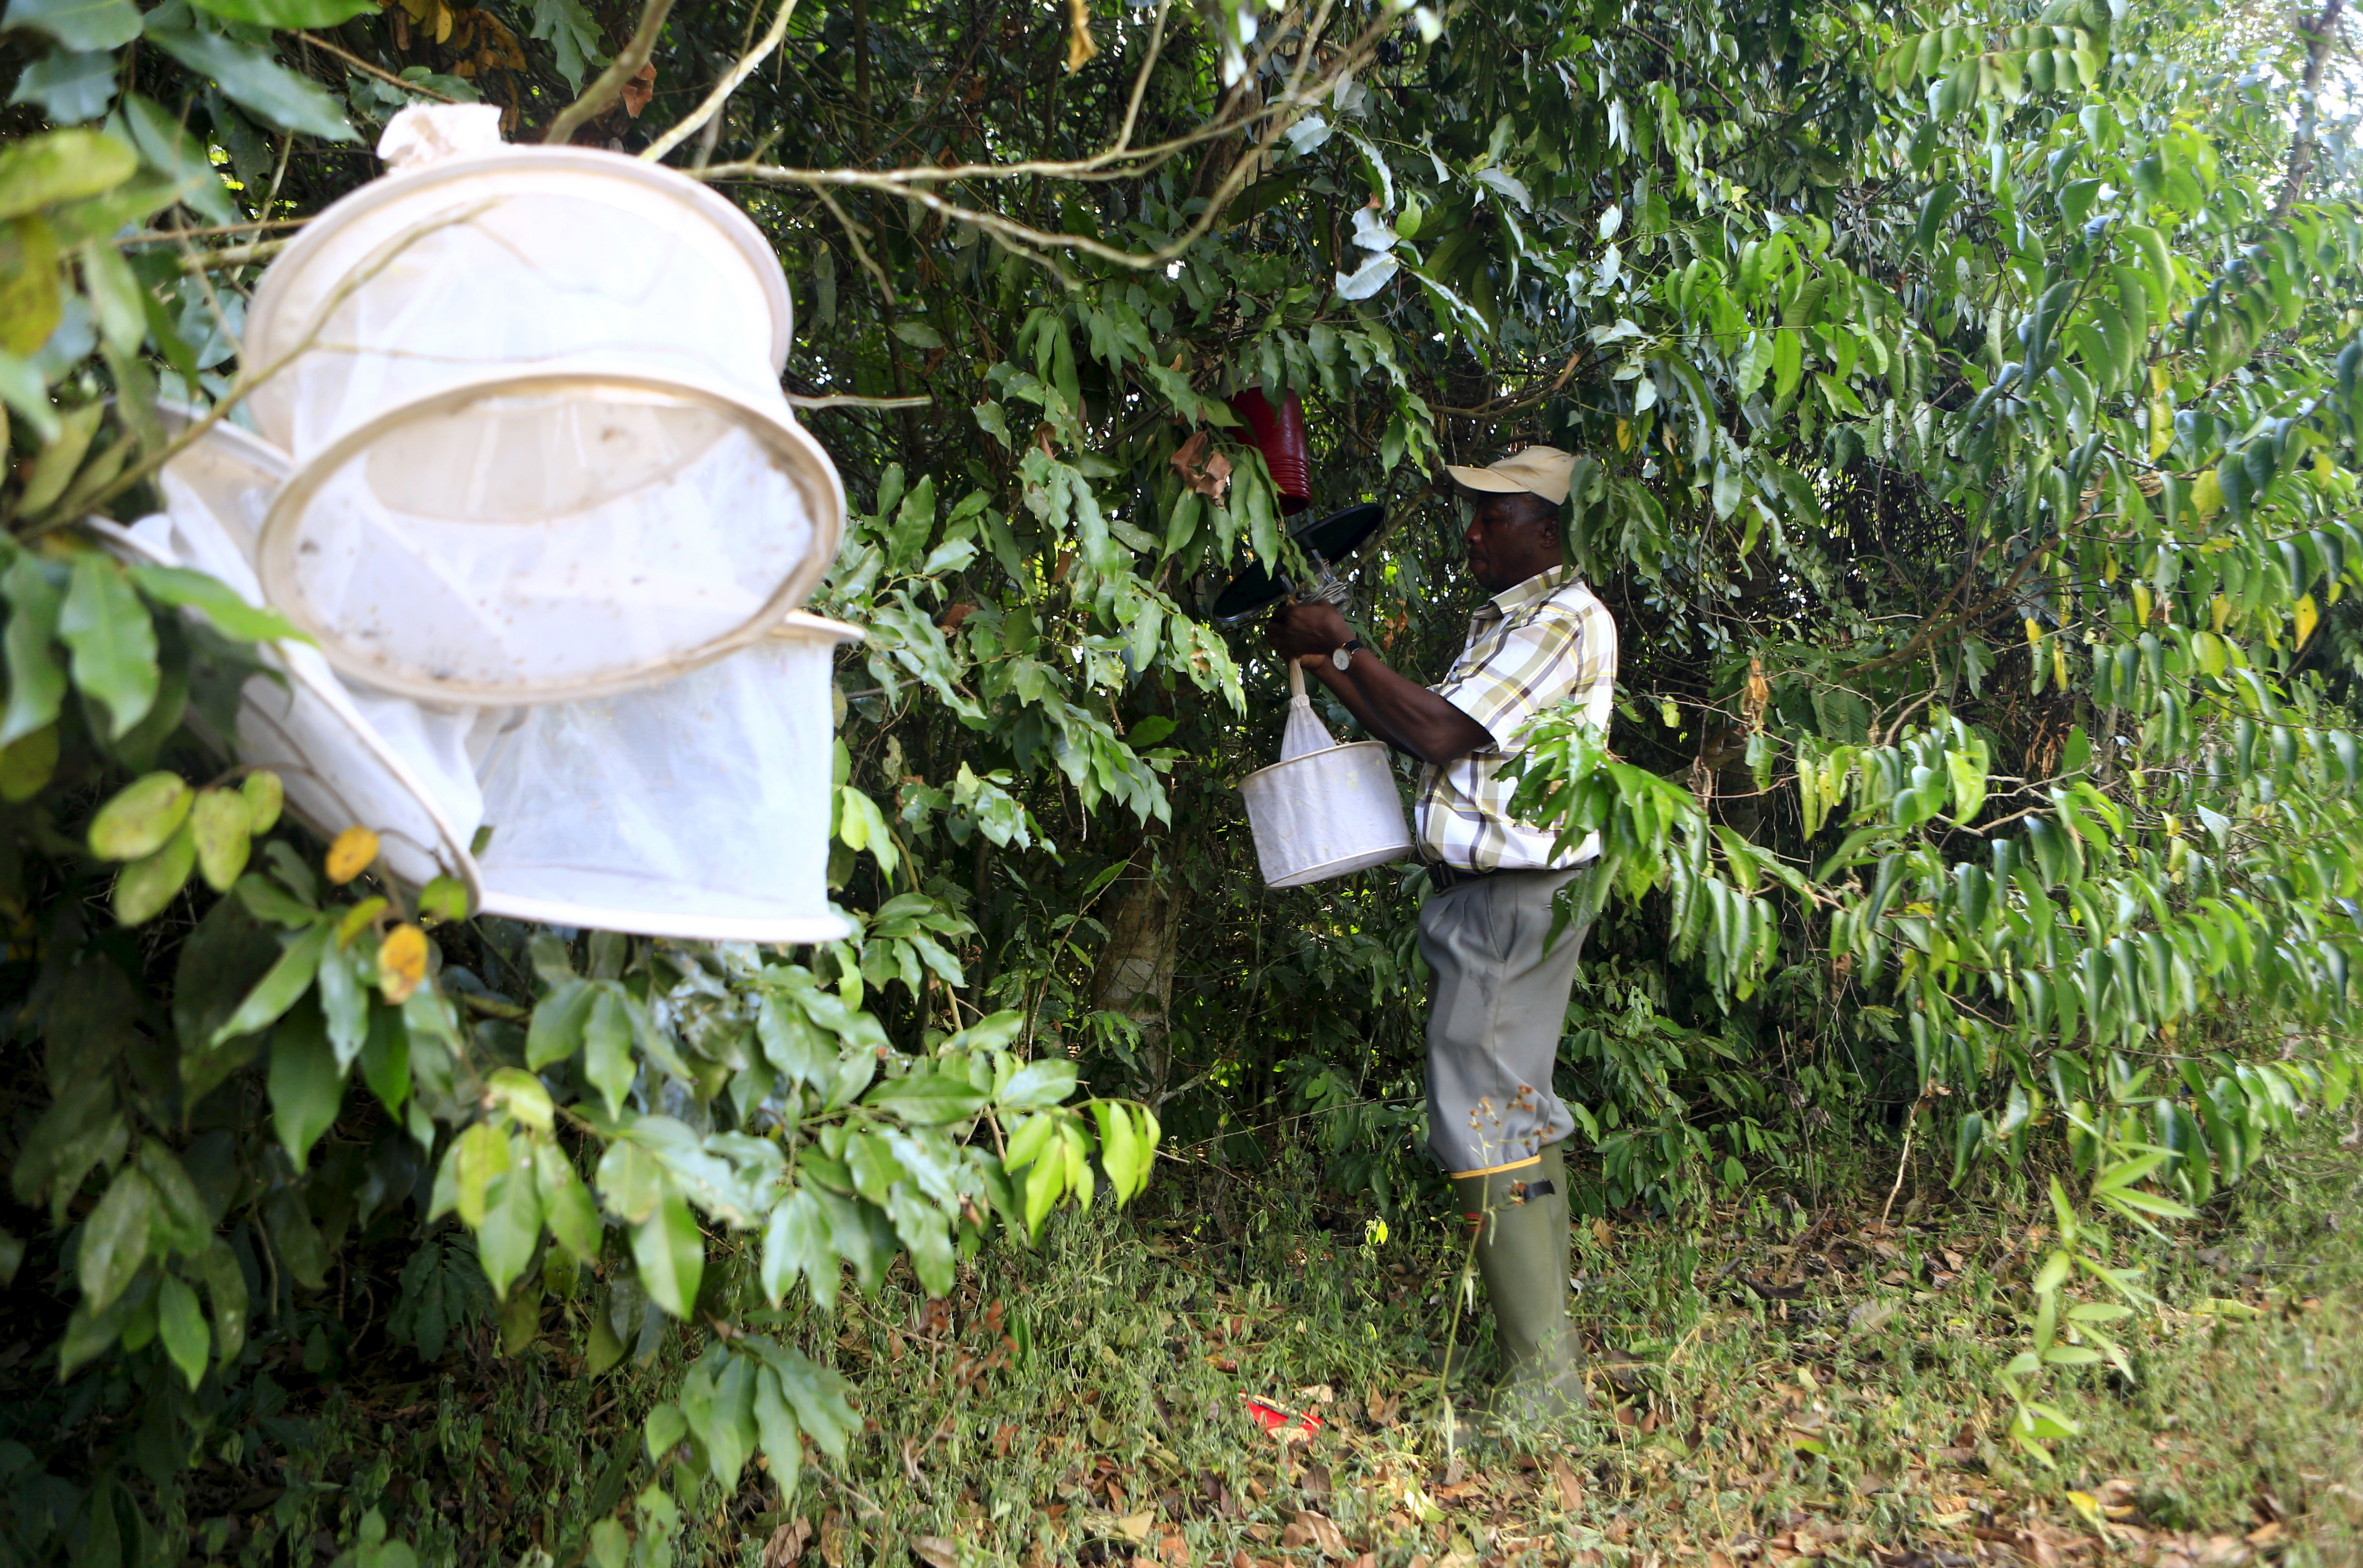 """A researcher from the Uganda Virus Research Institute (UVRI) collects insect traps at the Zika Forest in Entebbe, south of Uganda's capital Kampala March 2, 2016. In a patch of forest near Lake Victoria in Uganda, mosquitoes known to carry the Zika virus buzz with little seeming worry amid the local community. Scientists use a 120-foot high steel tower to harvest mosquitoes for research into viruses afflicting man and animals. Beyond that, however, there's little sign in the 15-acre Zika Forest of its central role in unravelling one of the world's major healthy crises in recent times.  REUTERS/James Akena SEARCH """"ZIKA FOREST"""" FOR THIS STORY. SEARCH """"THE WIDER IMAGE"""" FOR ALL STORIES  - GF10000354160"""